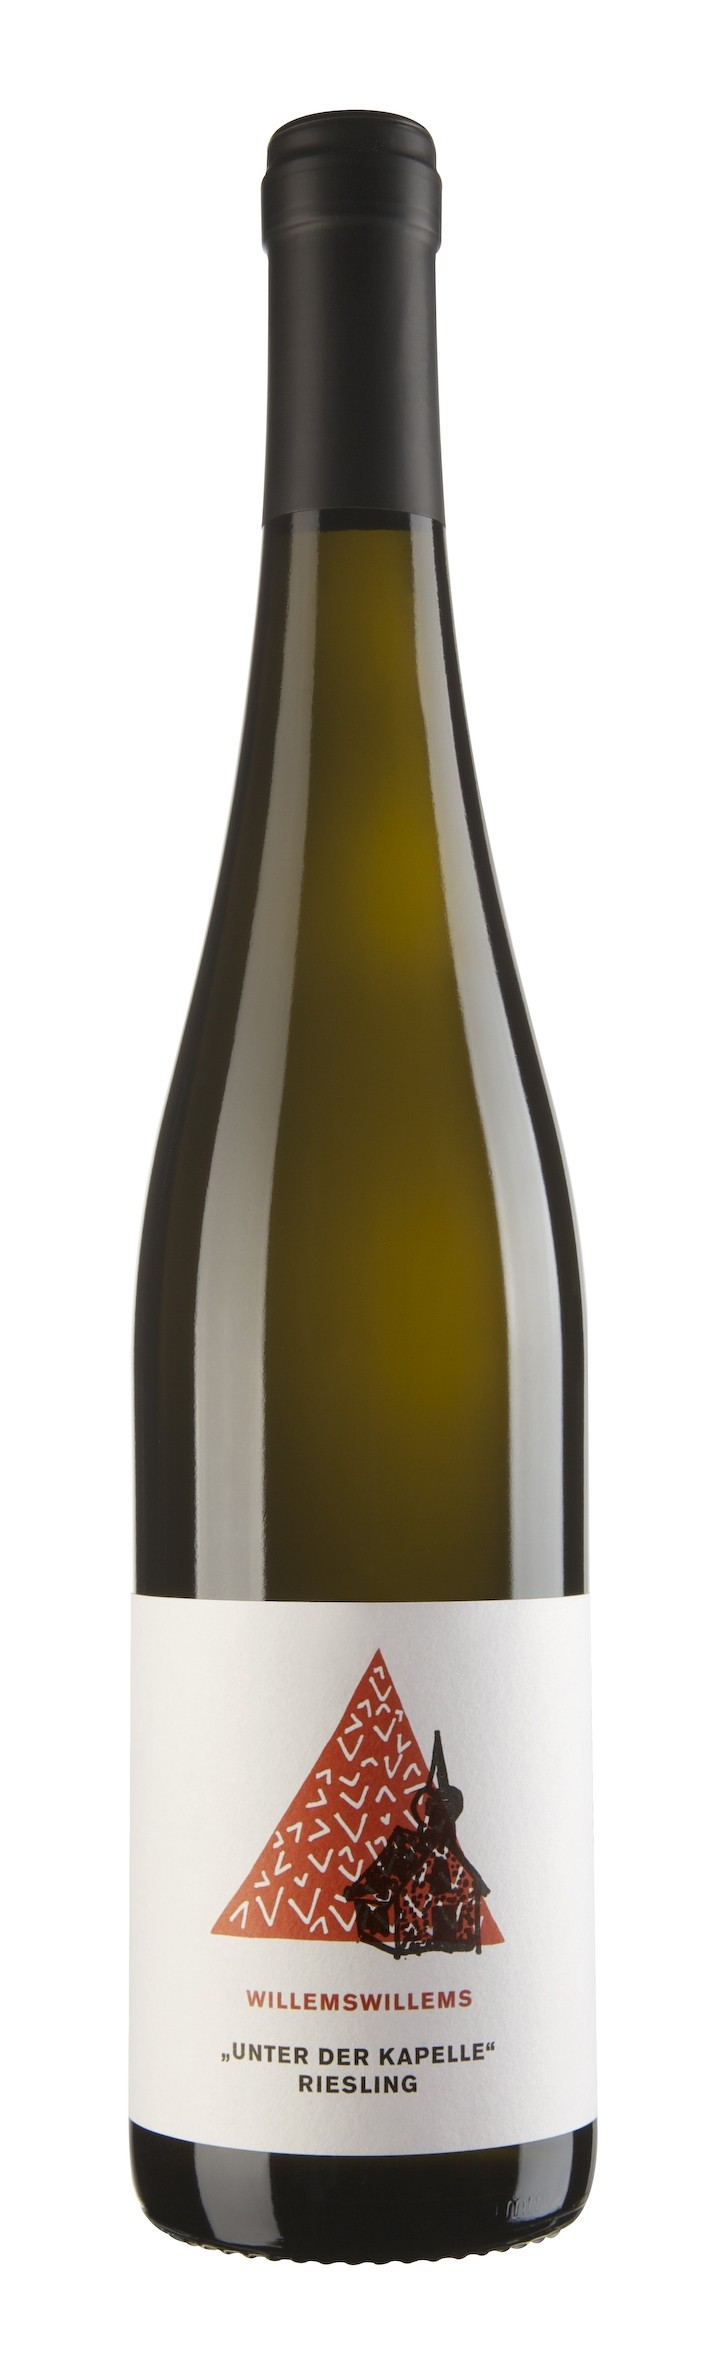 Willems Willems 'Altenberg' Kabinett Riesling